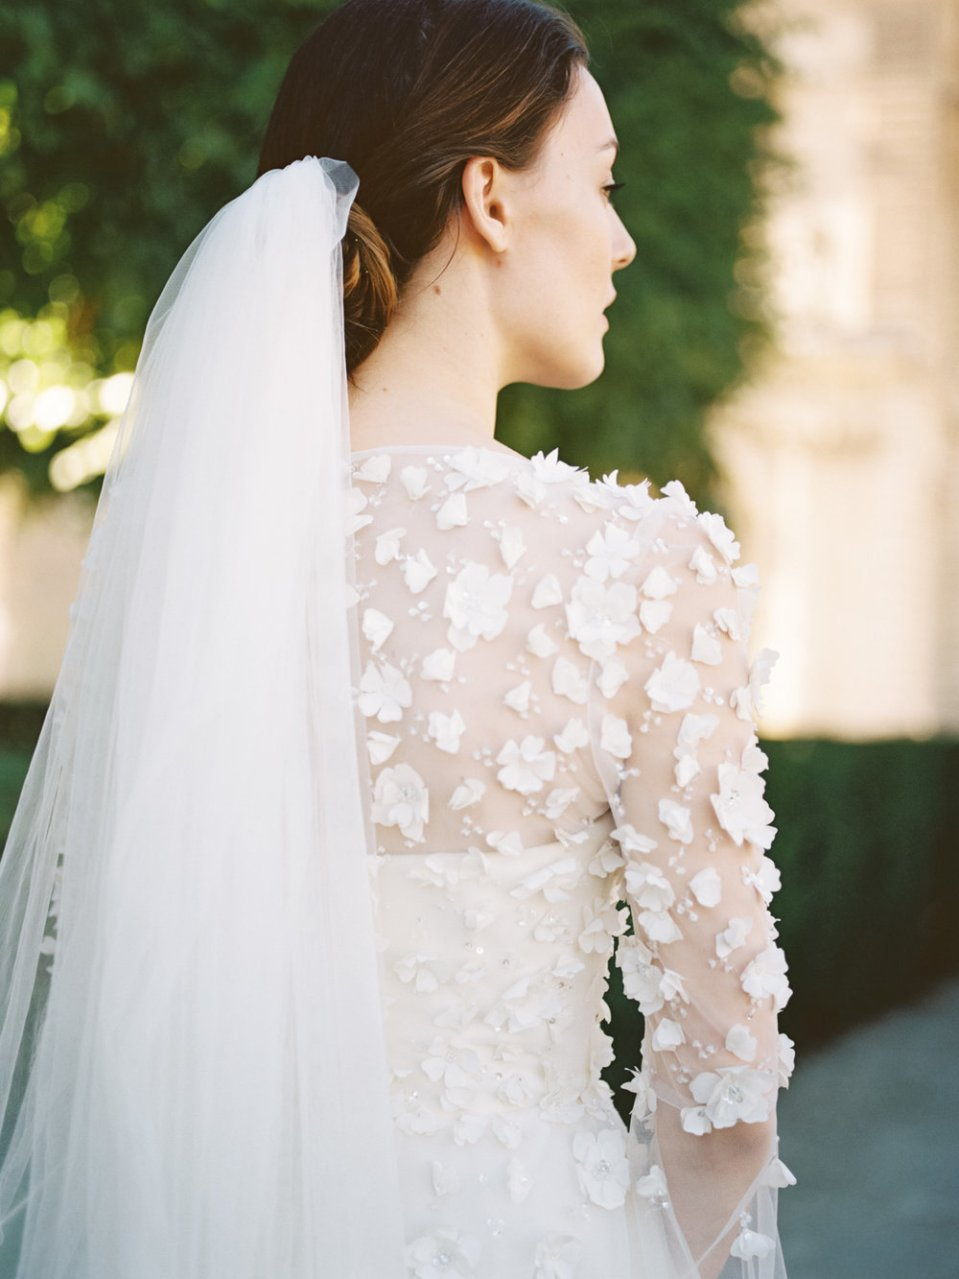 Destination Fine Art Wedding Editorial Photography in Paris with Max Chaoul -48.jpg